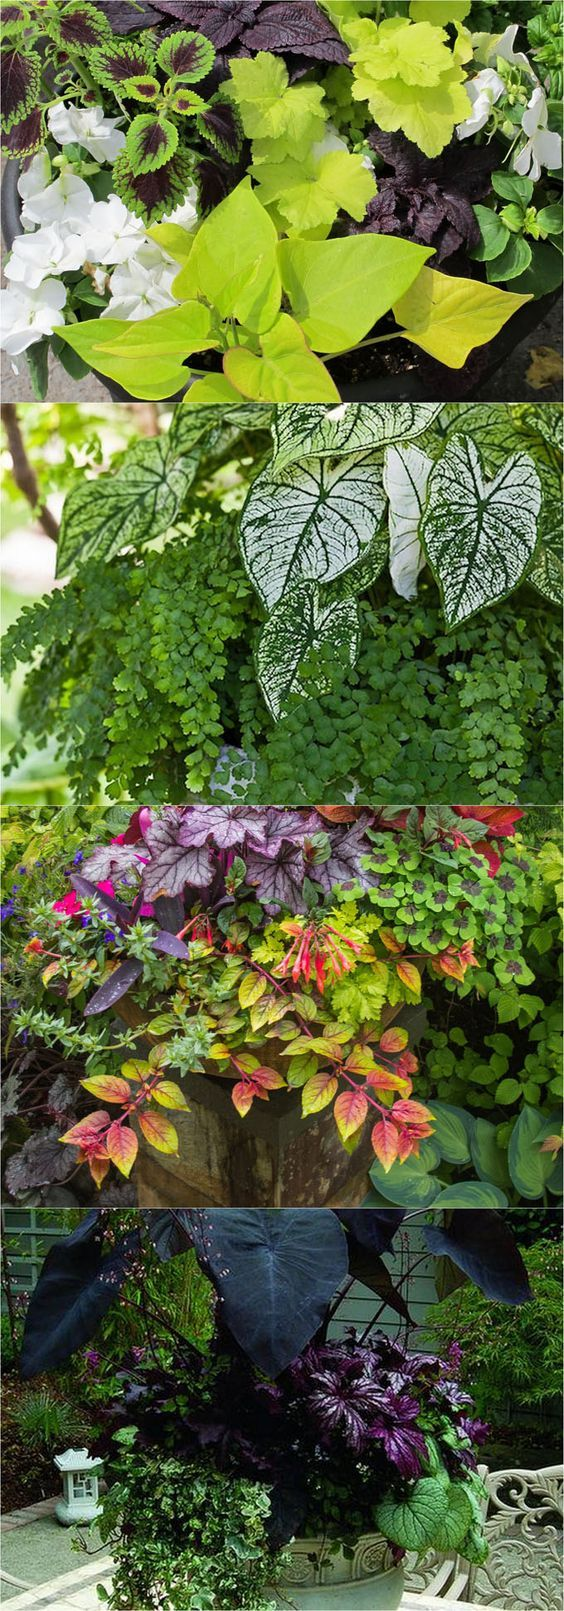 Shade flower gardens - Best 25 Flowers For Shade Ideas On Pinterest Plants For Shady Areas Shade Annuals And Shade Plants